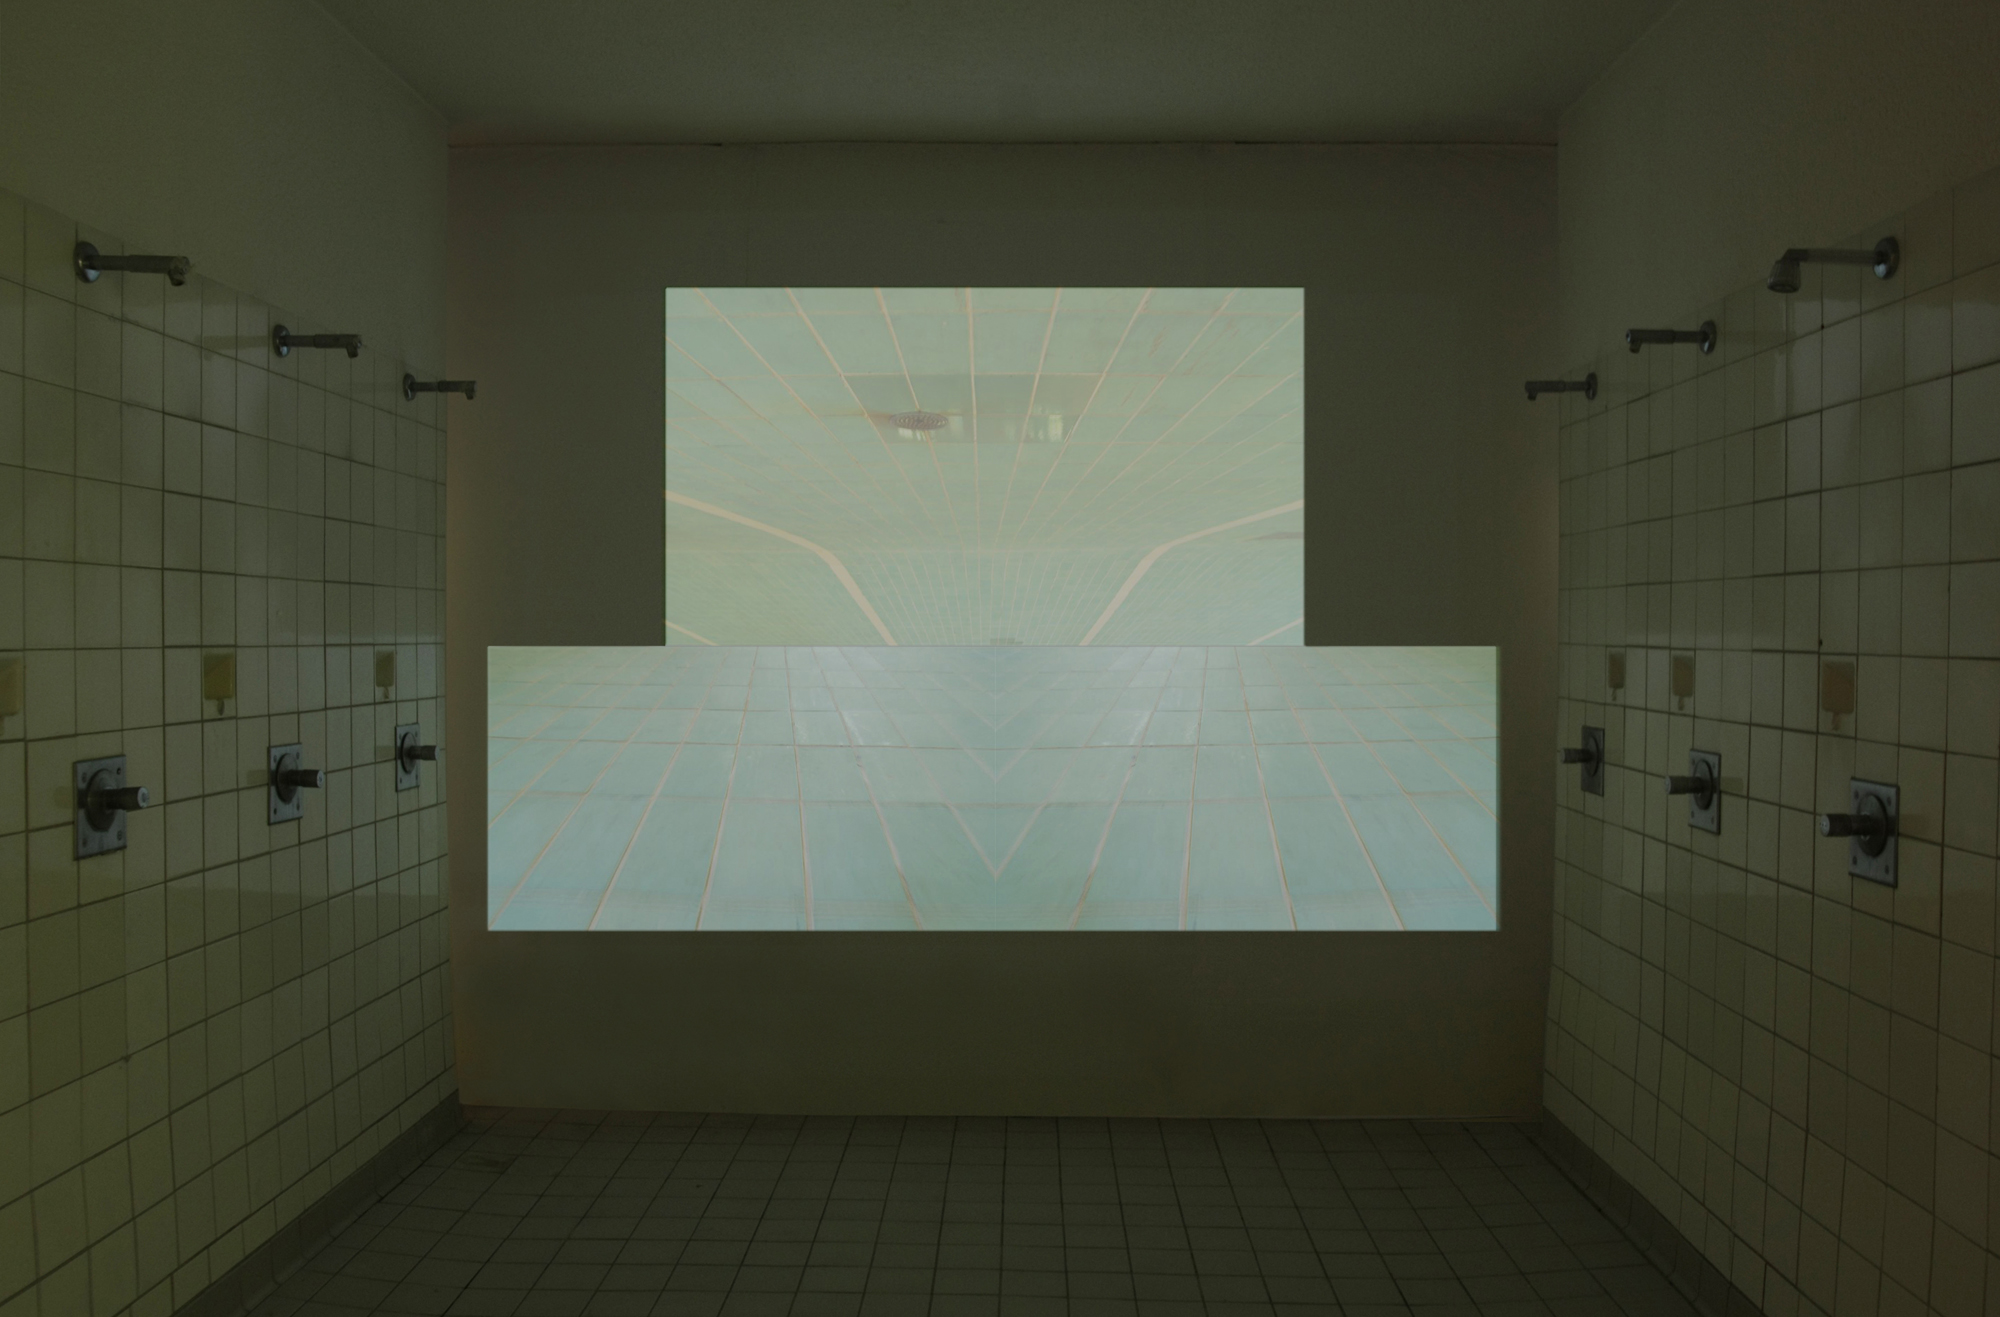 kacheln, three-channel video projection, 6:09 min., 2011  (installation view)  In kacheln the camera speeds over the tiled floor of an empty swimming pool. It moves at different angles and perspectives making the tile pattern appear like a perspective grid, merging it into one dragging surface, as well as fragmenting it with a kaleidoscopic effect to create new spatial situations. The camera explores the swimming pool following the three tracks and the limiting lines that before determined the movement of the swimmers.